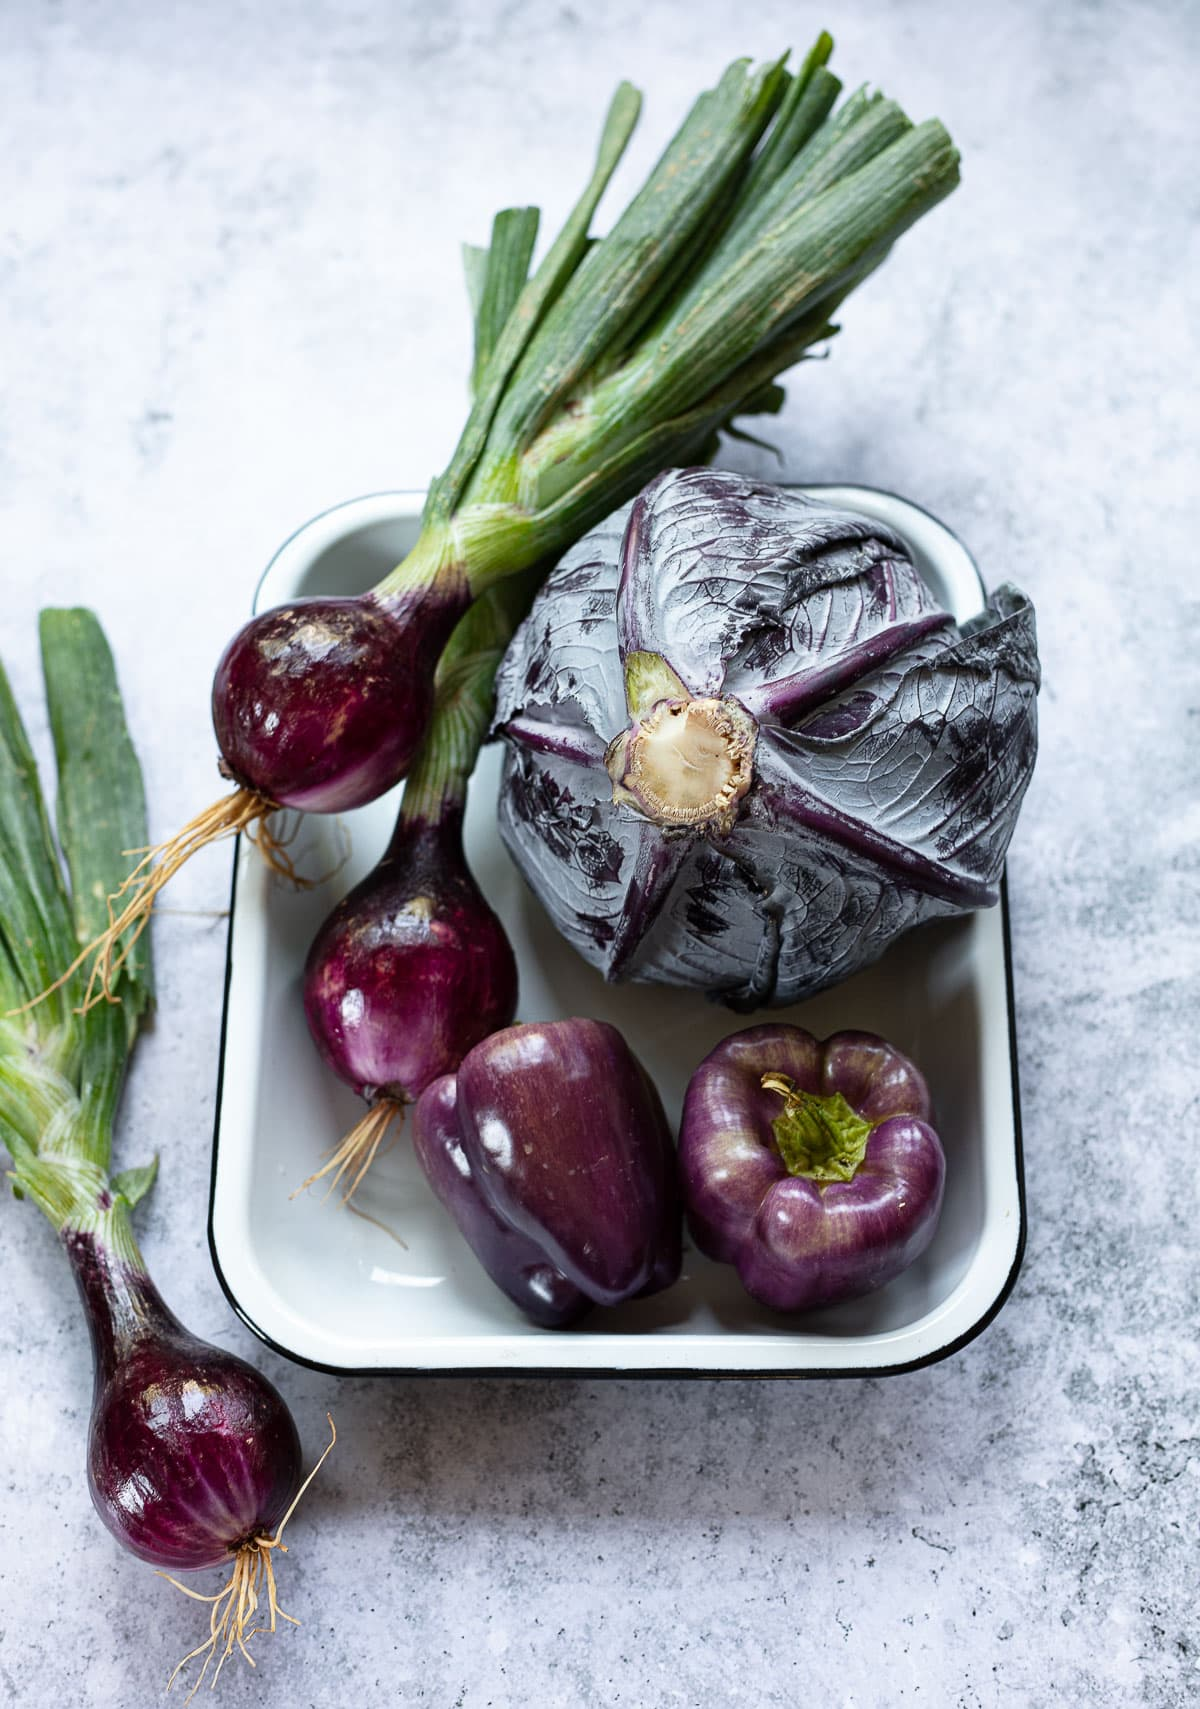 Raw vegetables arranged in a white enamel pan including a whole head of red cabbage, purple bell pepper and red onions.